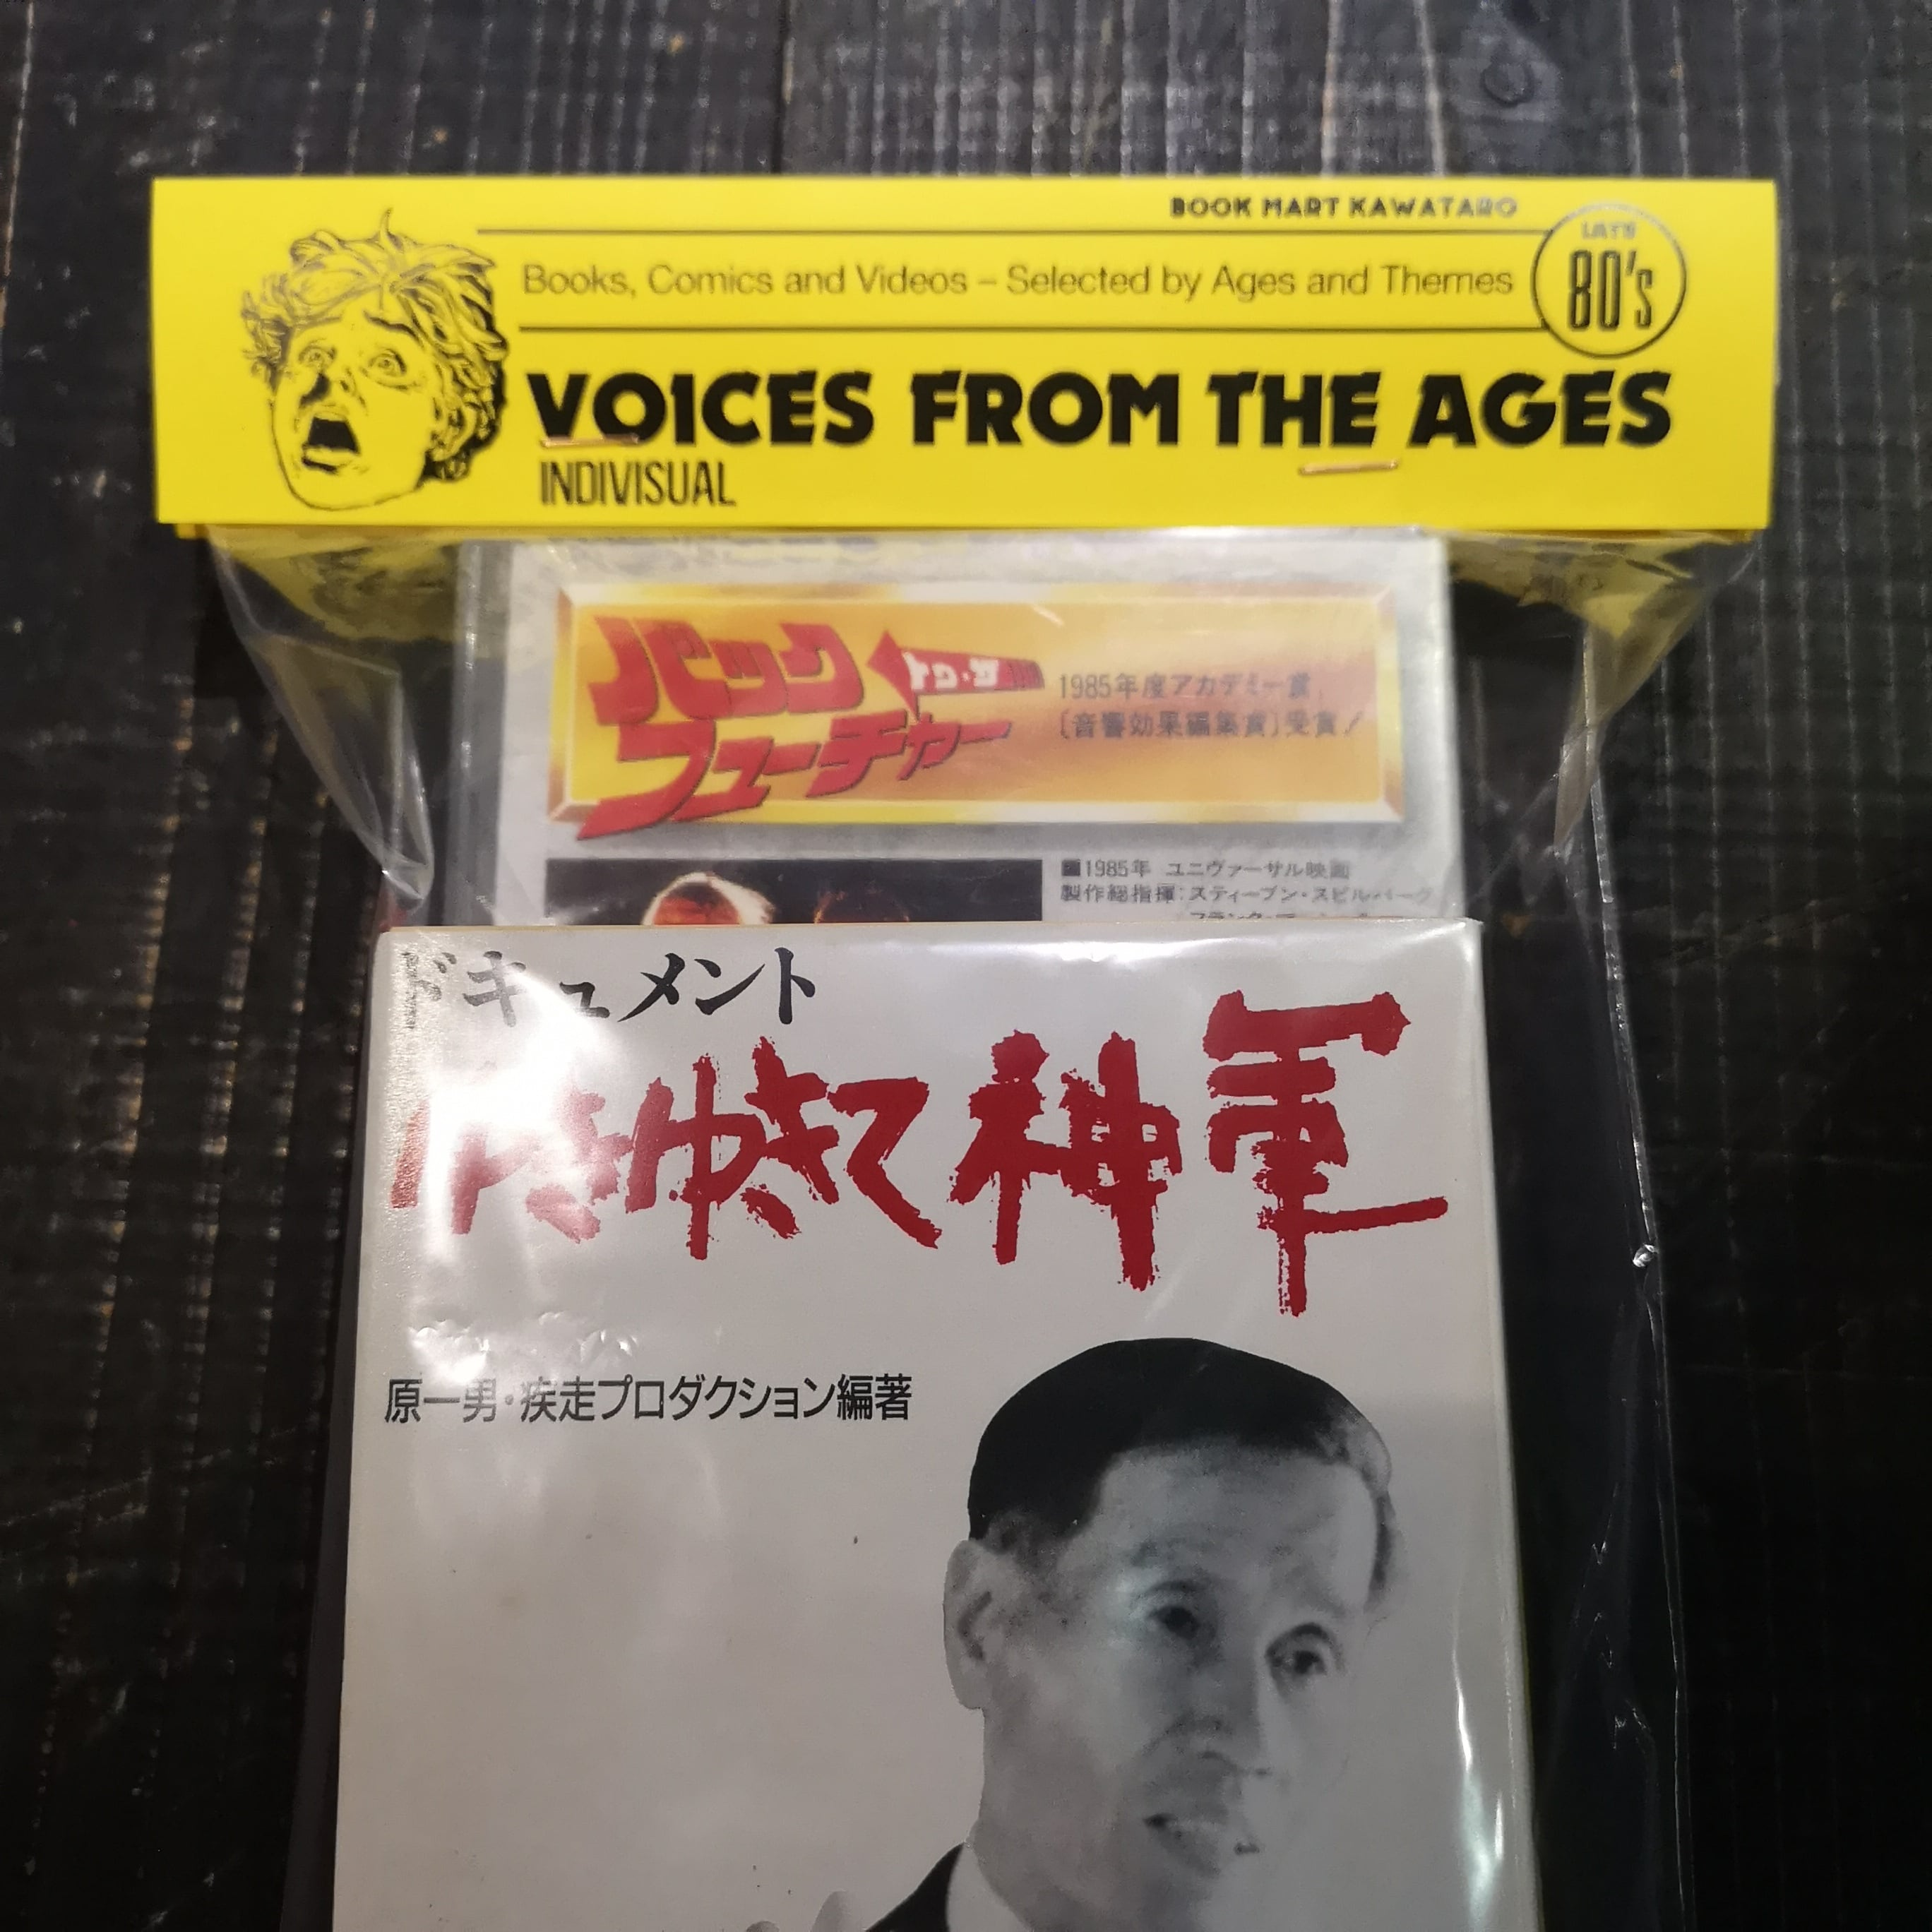 """VOICES FROM THE AGES - LATE 80's """"INDIVISUAL"""""""